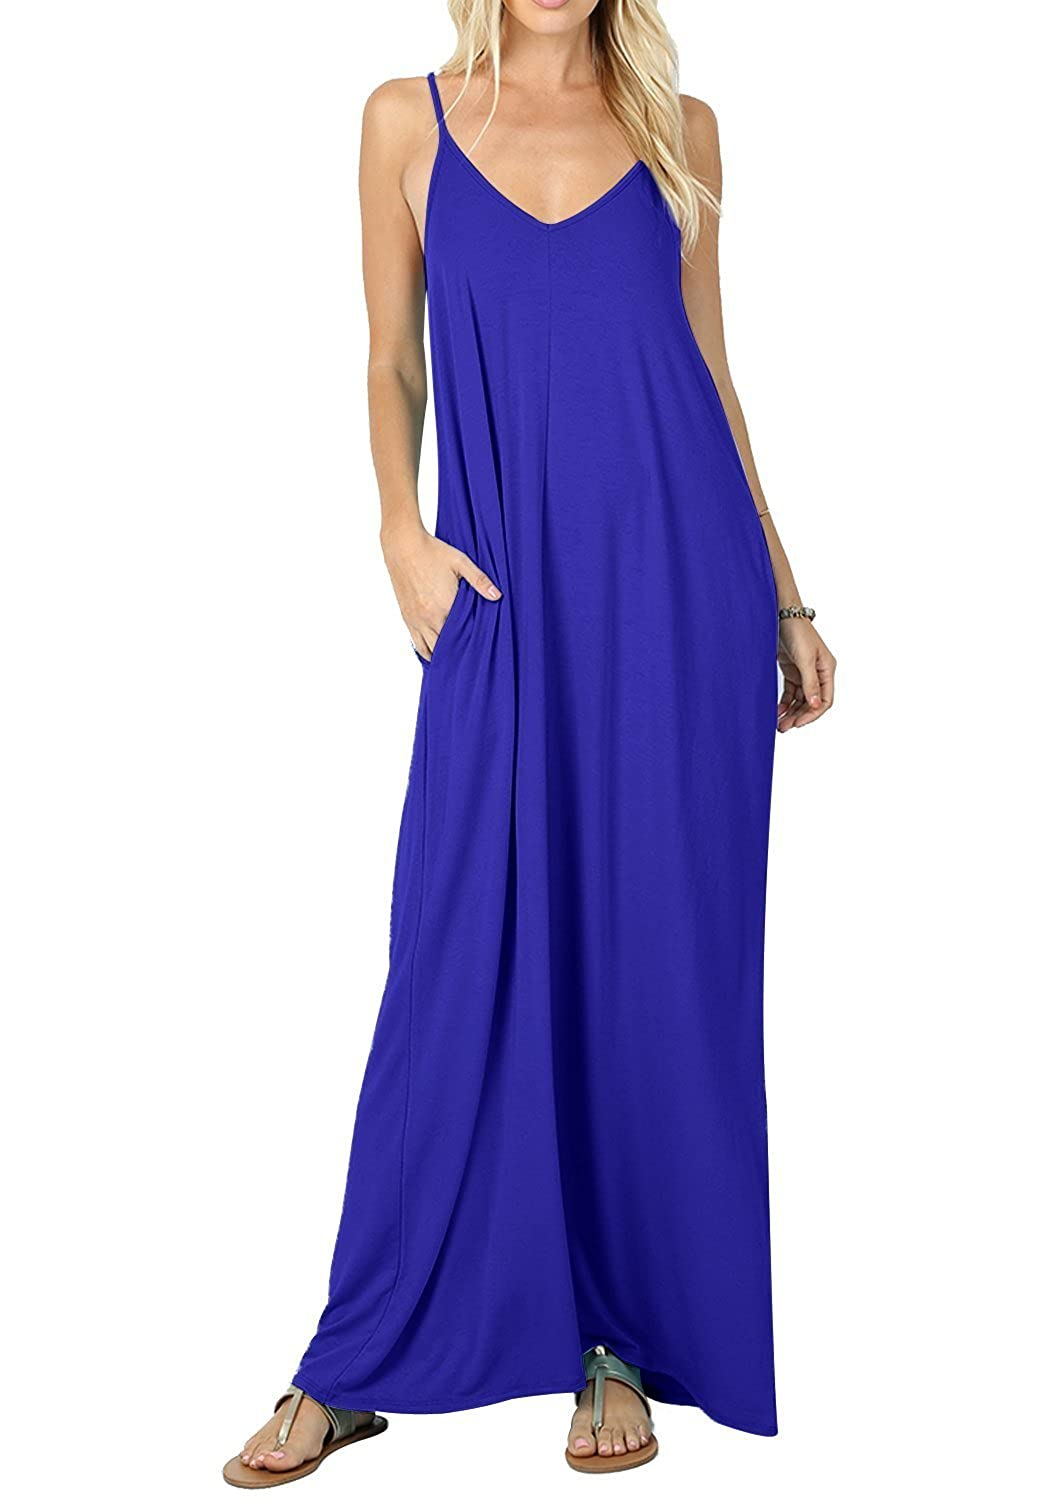 f3f14e380a16 Stretchy Materials,Soft,Comfy and Flowy Dresses Adjustble Strappy,Floor  Length,Solid Color Maxi Long Dress Sleeveless Dress,Sling Dress,Backless  Dress,Beach ...